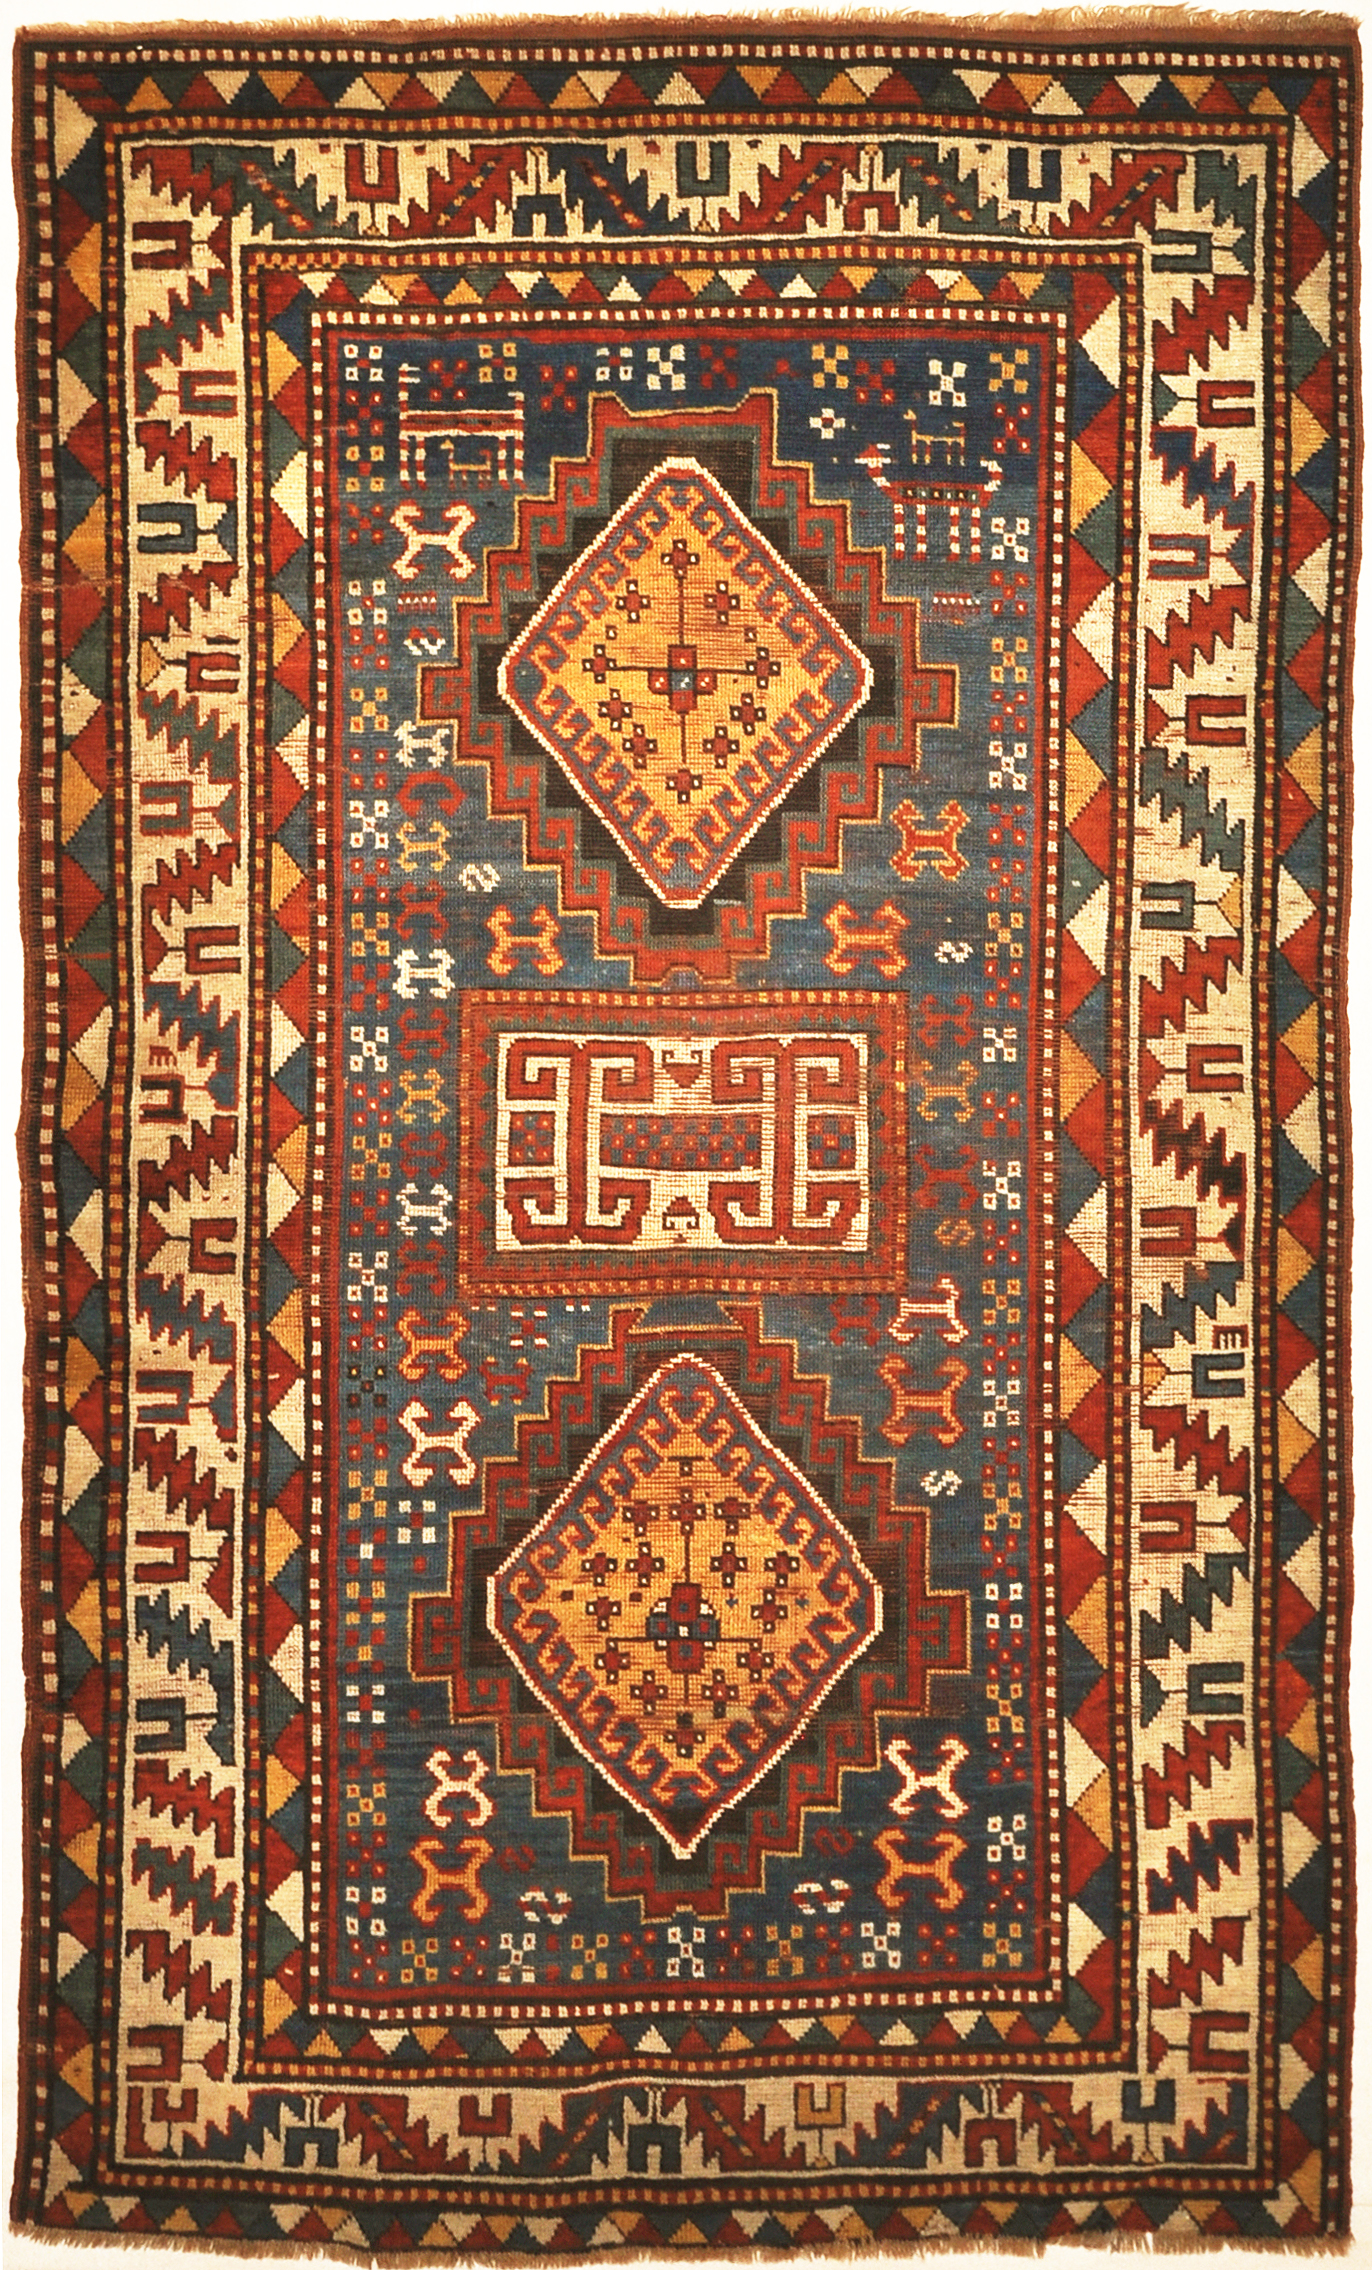 Good Quality Antique Kazak Rug from Early 19th Century. A piece of genuine authentic antique woven carpet art sold by Santa Barbara Design Center.